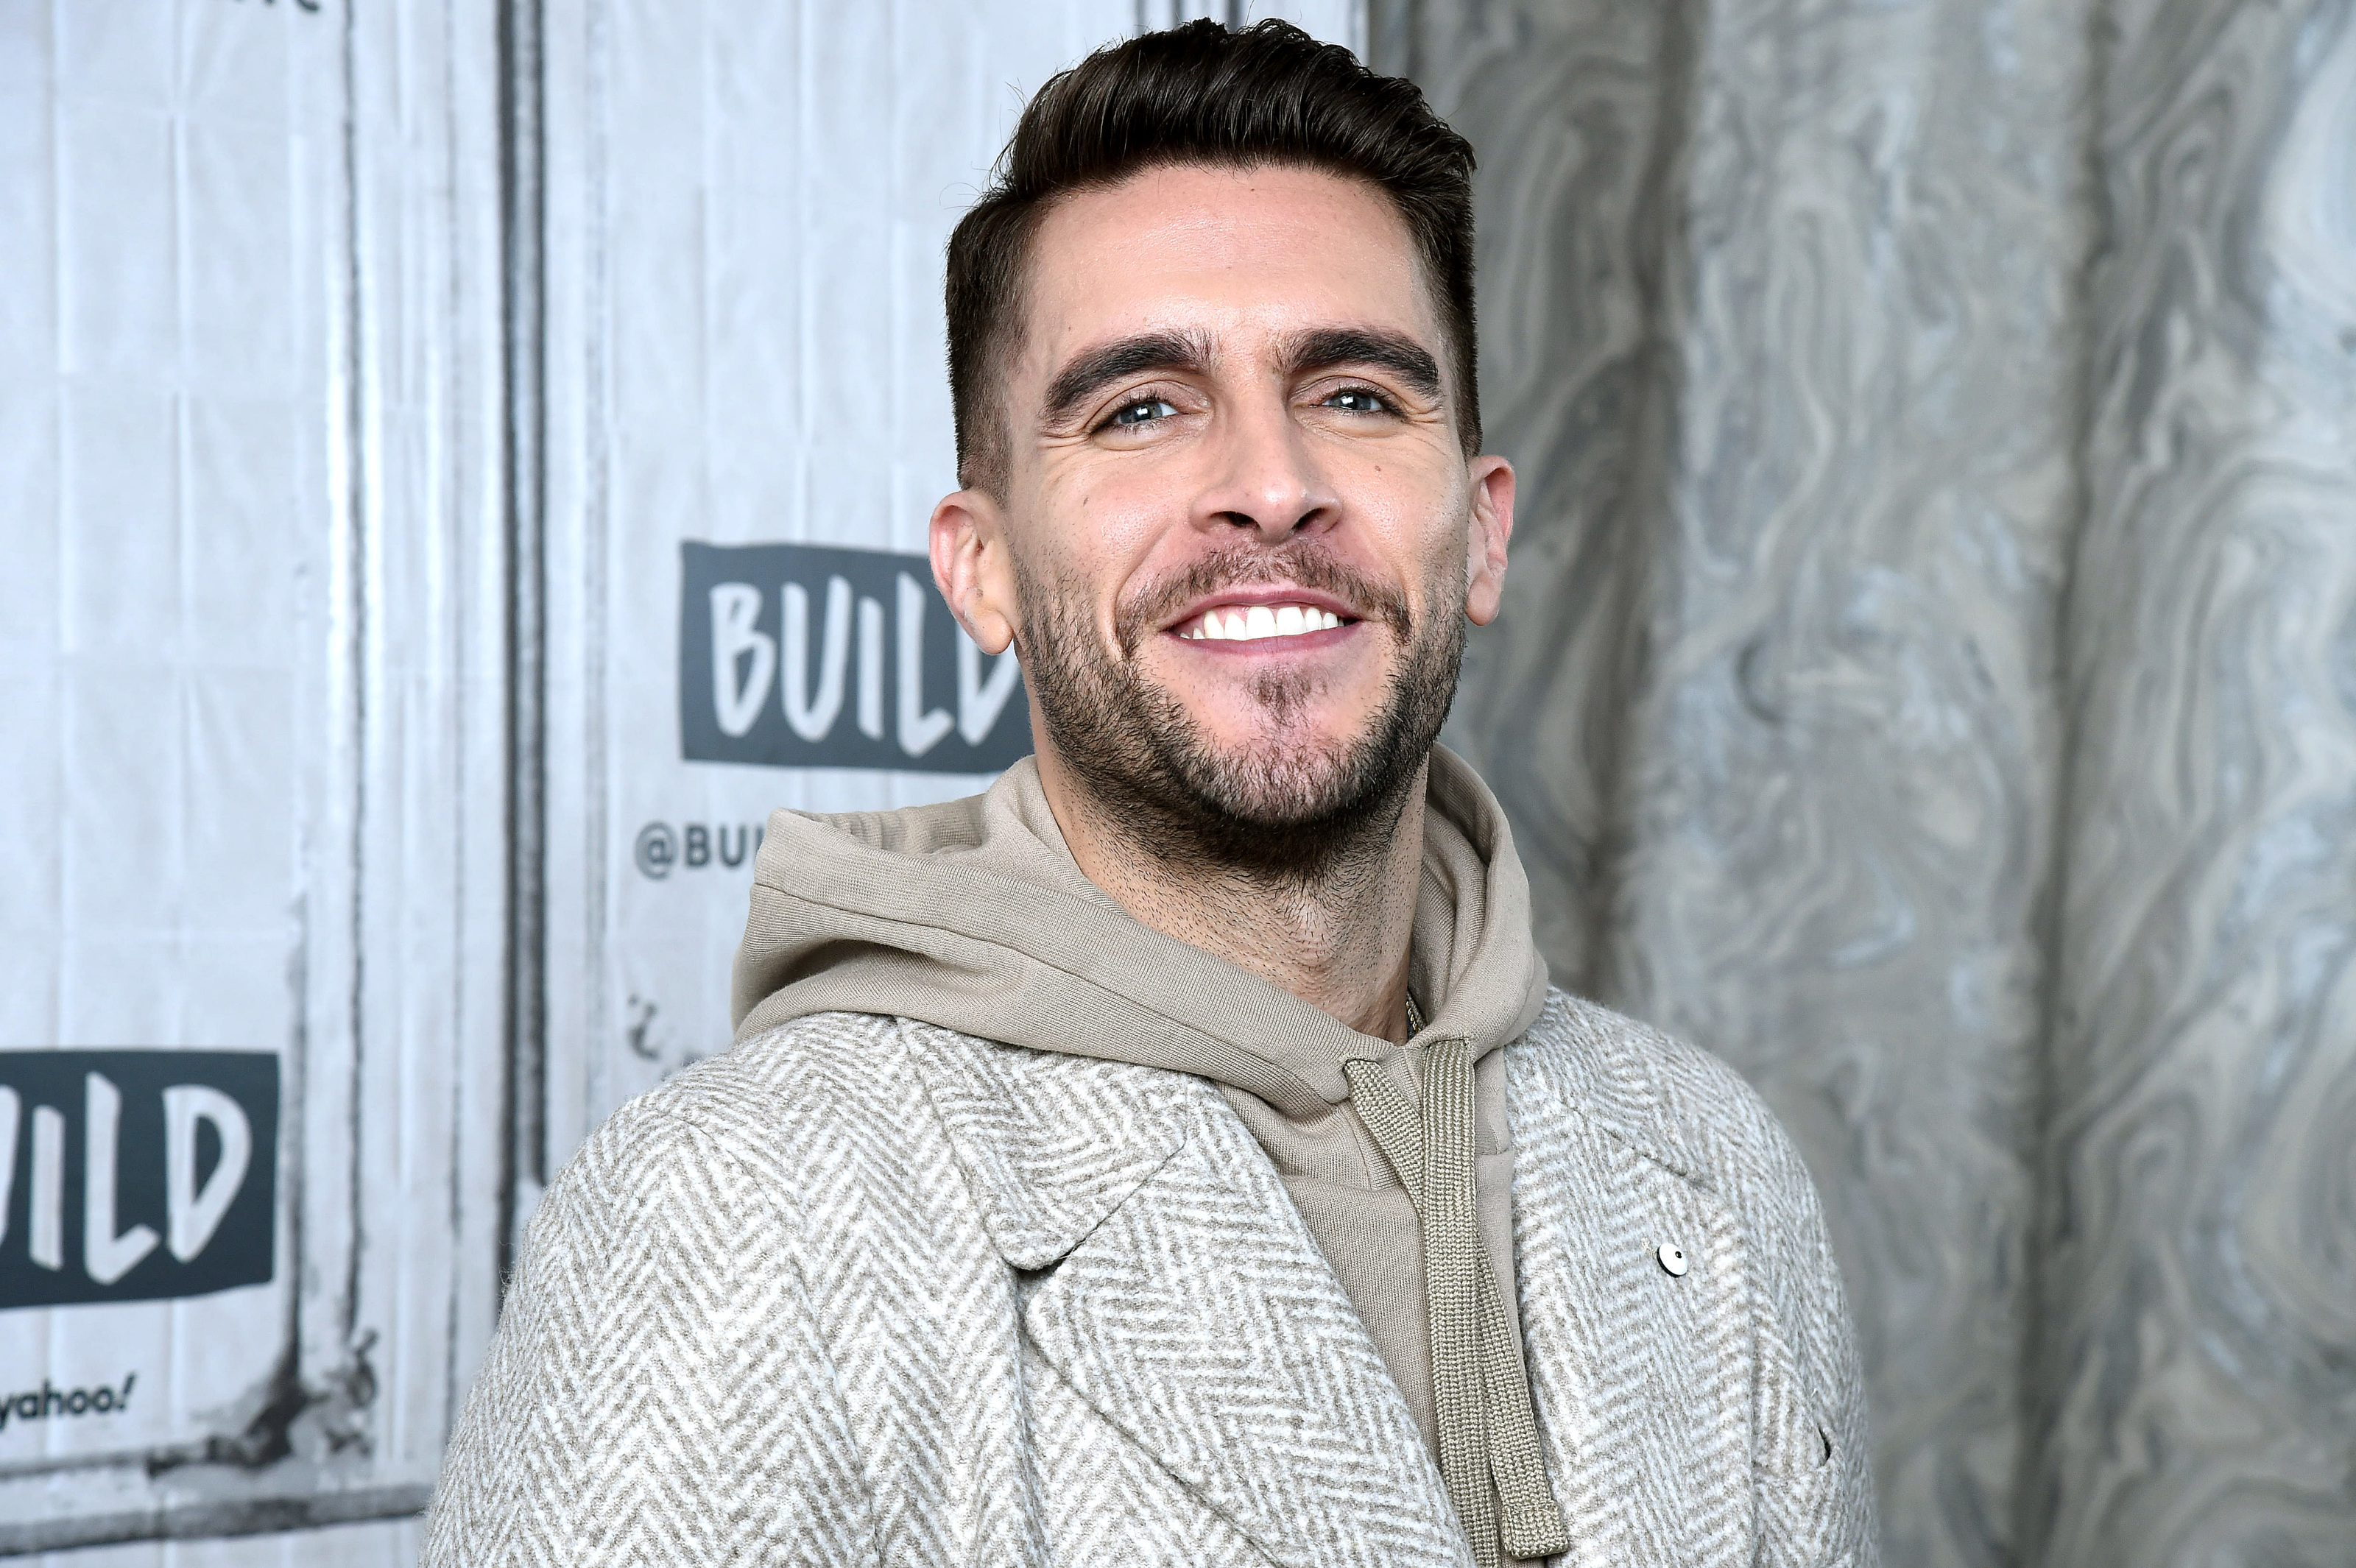 Chicago Pd S Josh Segarra Cast In Night School Pilot For Nbc Последние твиты от josh potter (@j_potter). https onechicagocenter com 2020 03 07 josh segarra night school casting